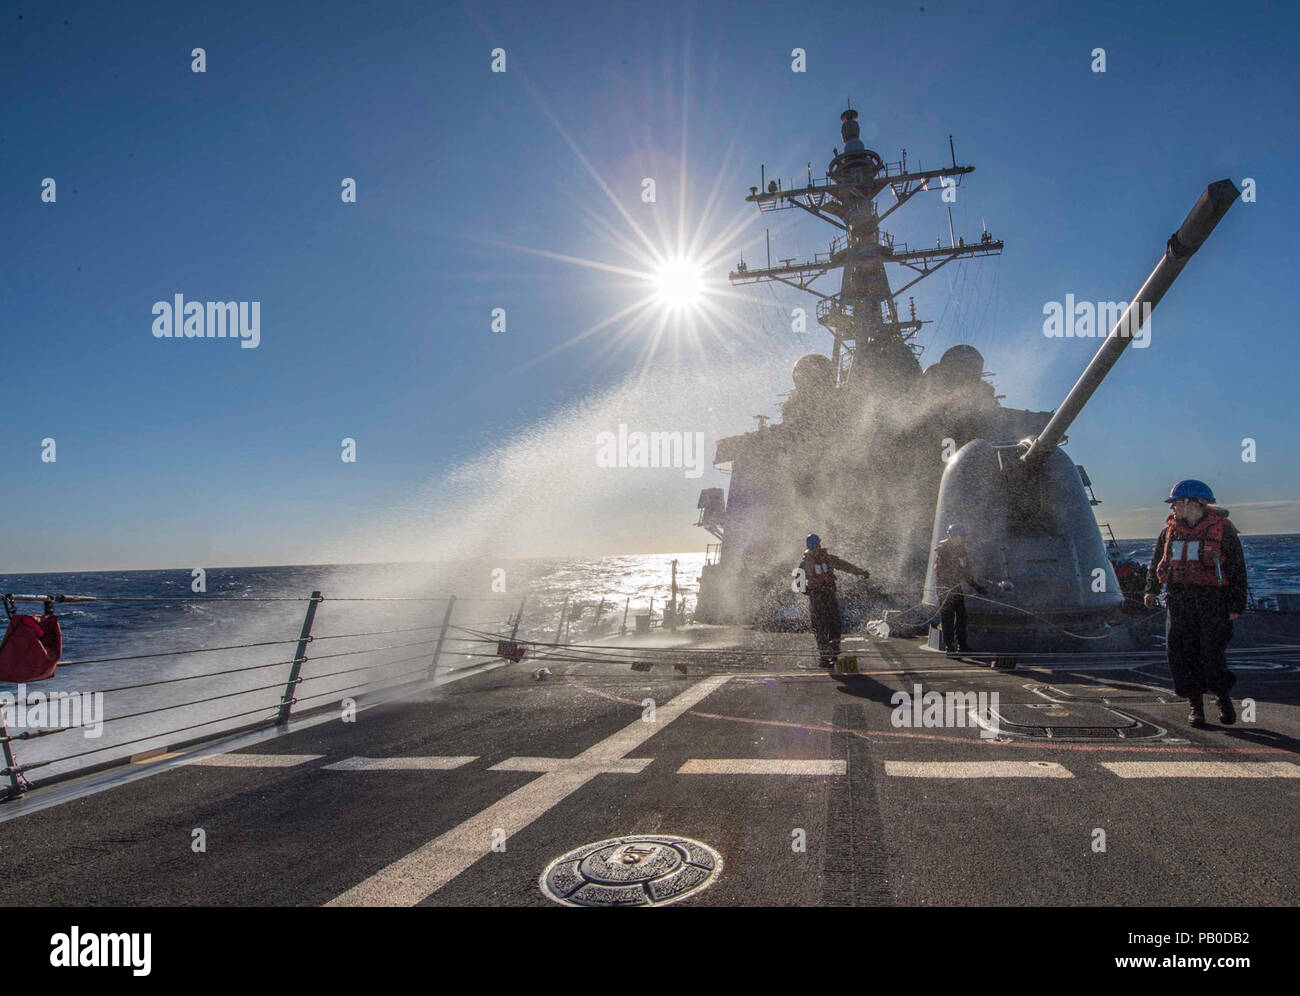 A wave crashes over the forecastle of USS Carney. MEDITERRANEAN SEA (Jan. 22, 2018) A wave crashes over the forecastle of the Arleigh Burke-class guided-missile destroyer USS Carney (DDG 64) while underway in the Mediterranean Sea. Carney is forward-deployed to Rota, Spain, on its fourth patrol in the U.S. 6th Fleet area of operations in support of regional allies and partners, and U.S. national security interests in Europe. Stock Photo